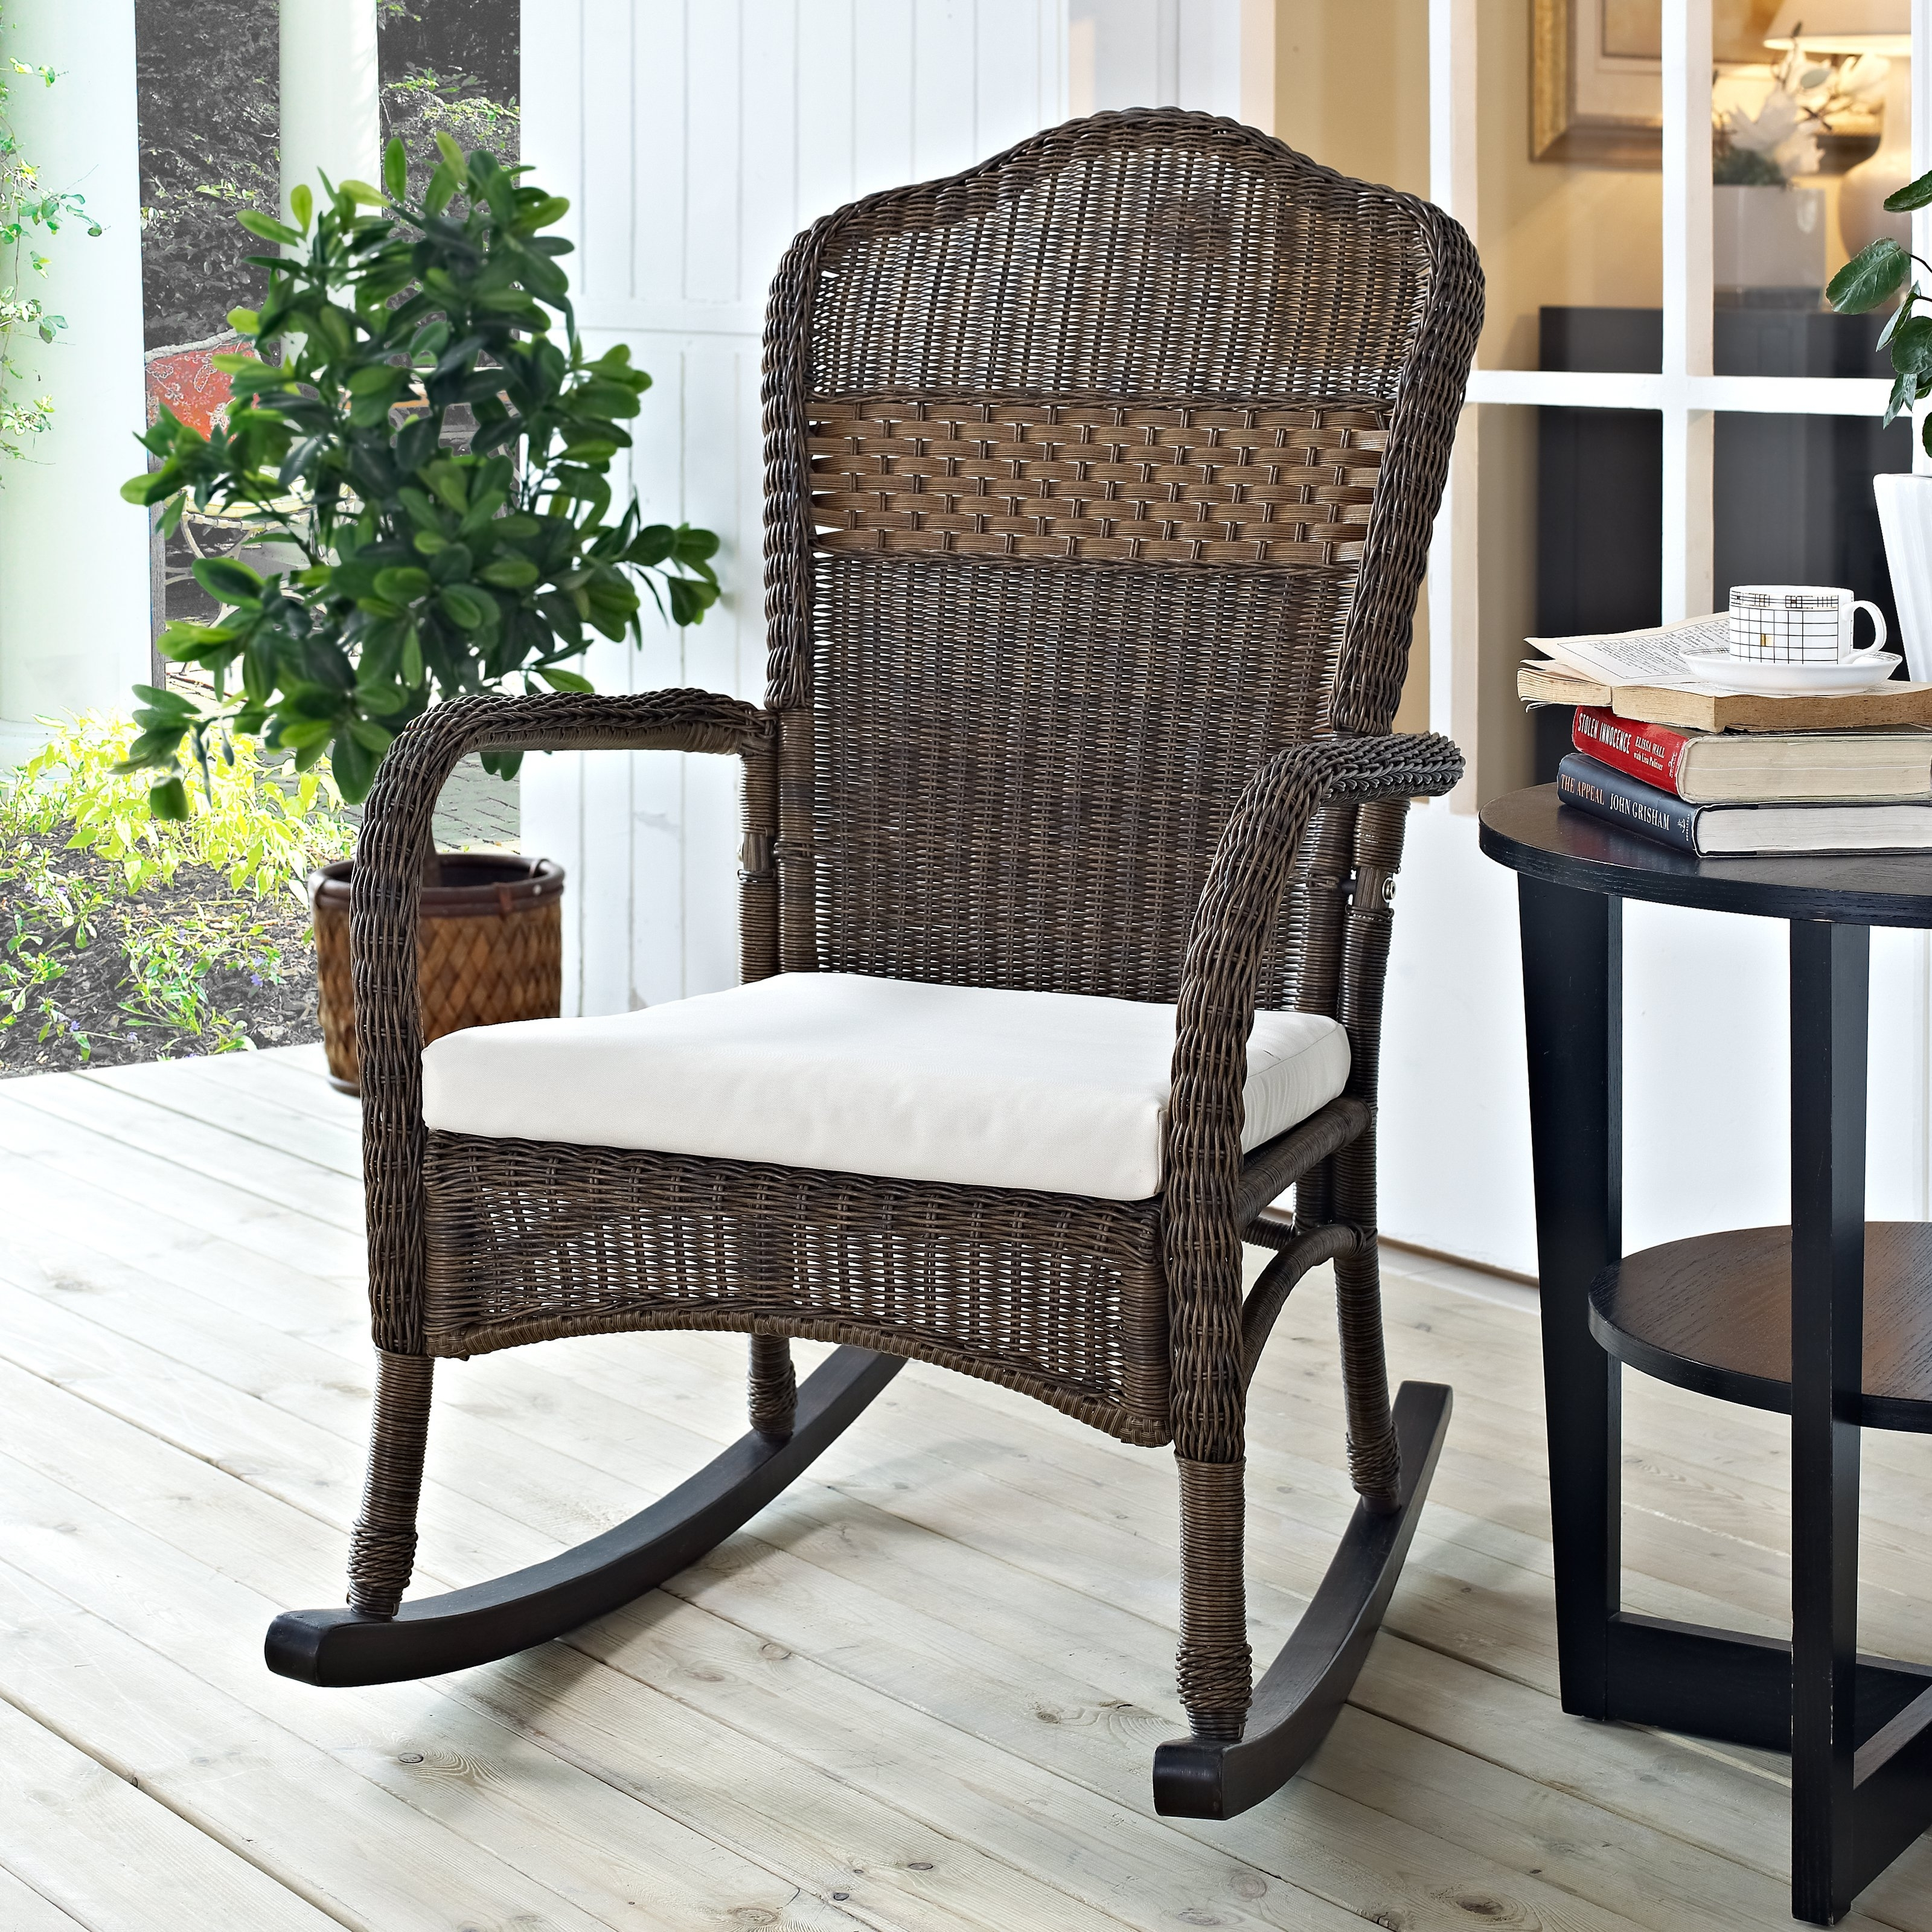 Coral Coast Mocha Resin Wicker Rocking Chair With Beige Cushion Intended For Wicker Rocking Chairs With Cushions (#4 of 15)